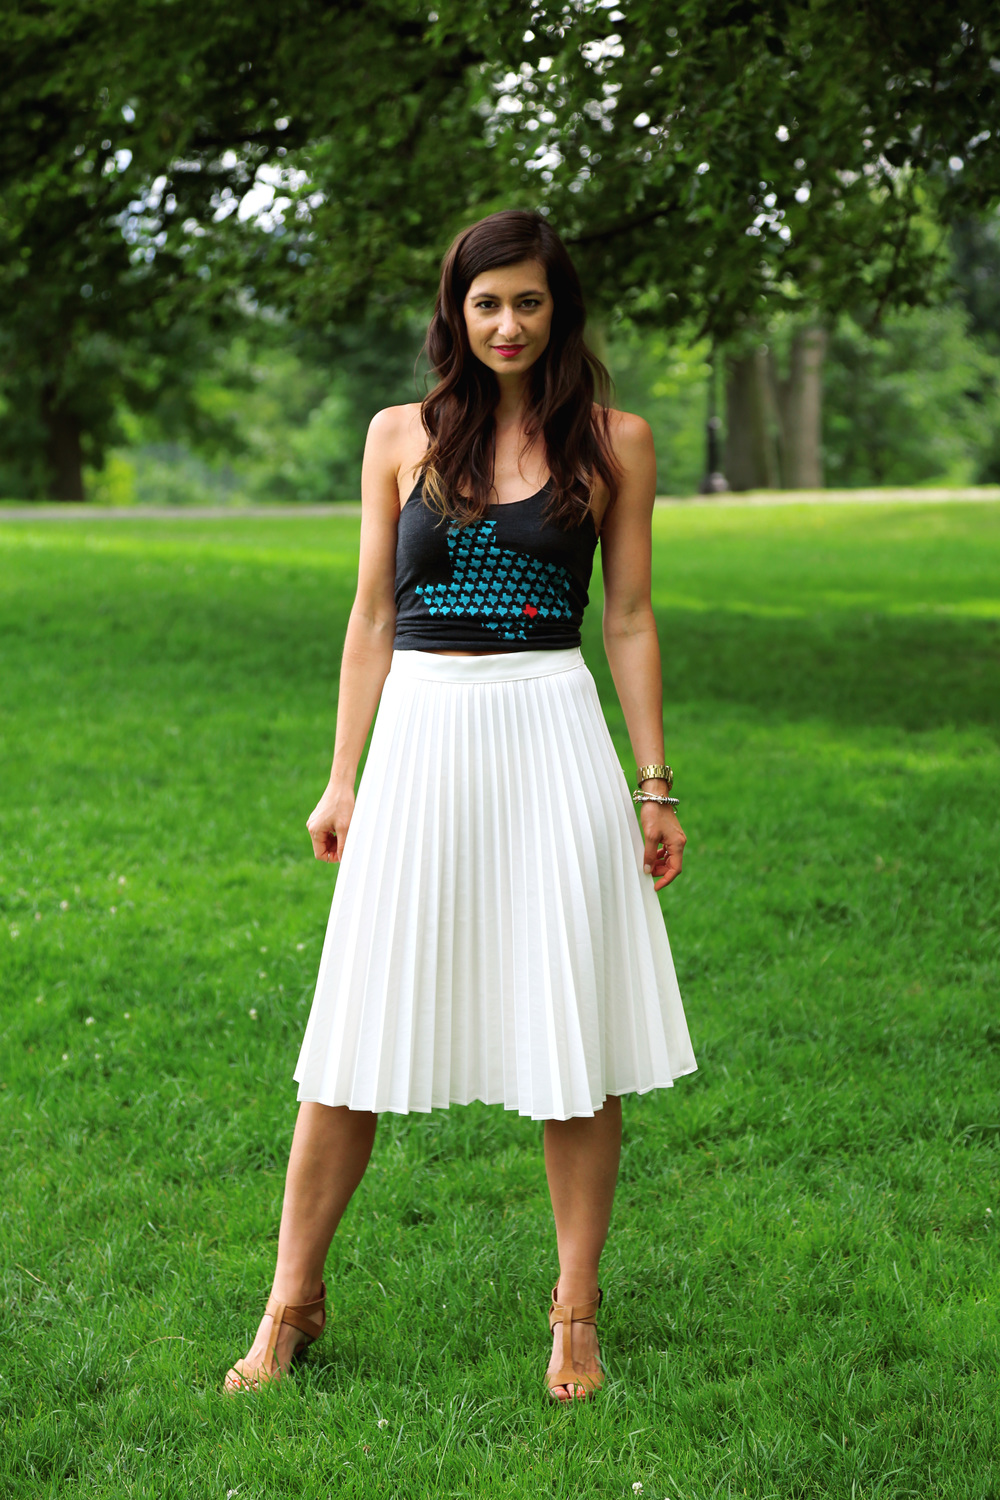 Graphic Tee   Midi Skirt = Dressy Casual Perfection — Your Sunday Best